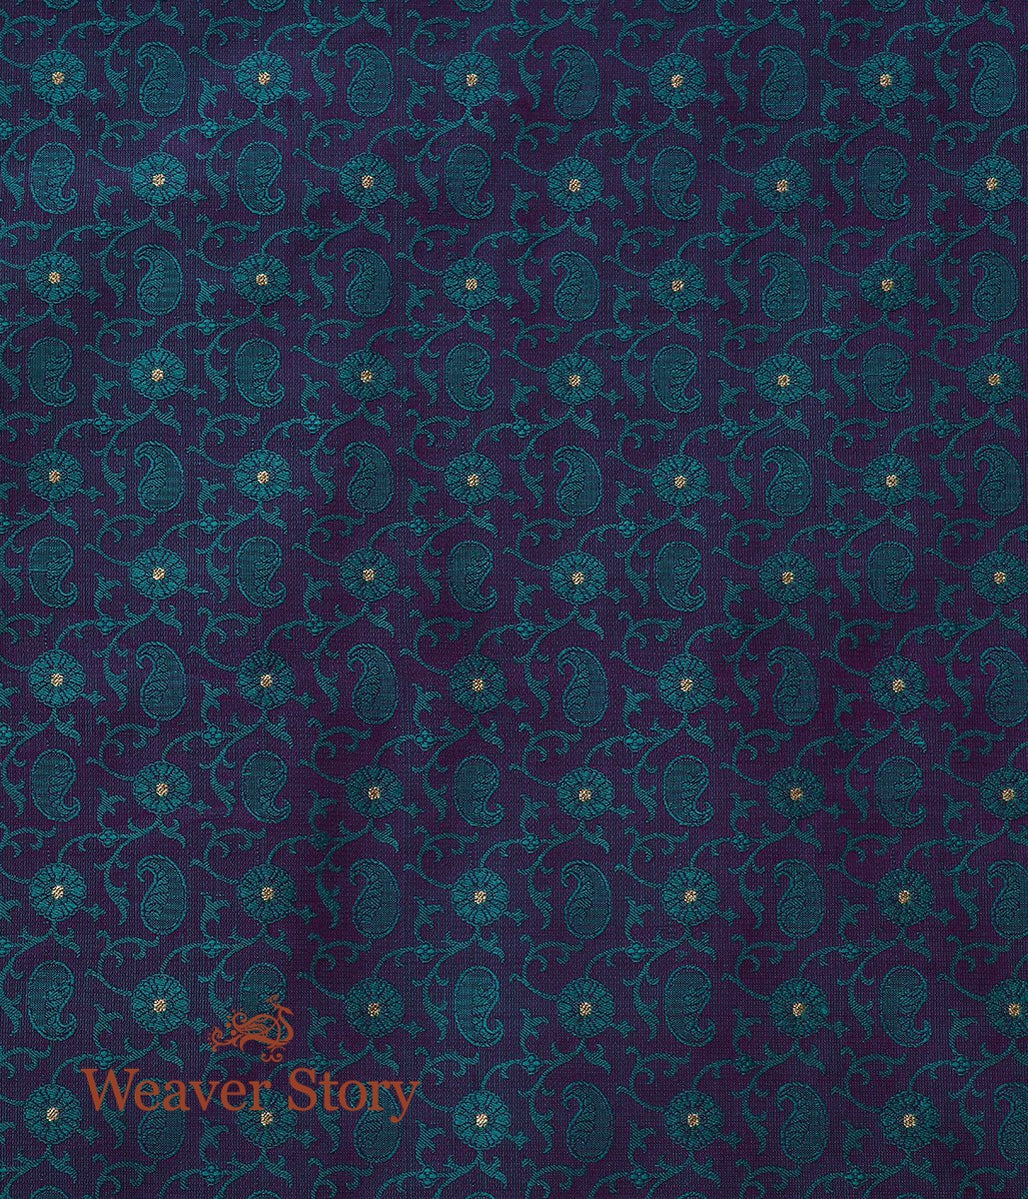 Handwoven Purple and Green Tanchoi Fabric with Paisley and Zari Booti